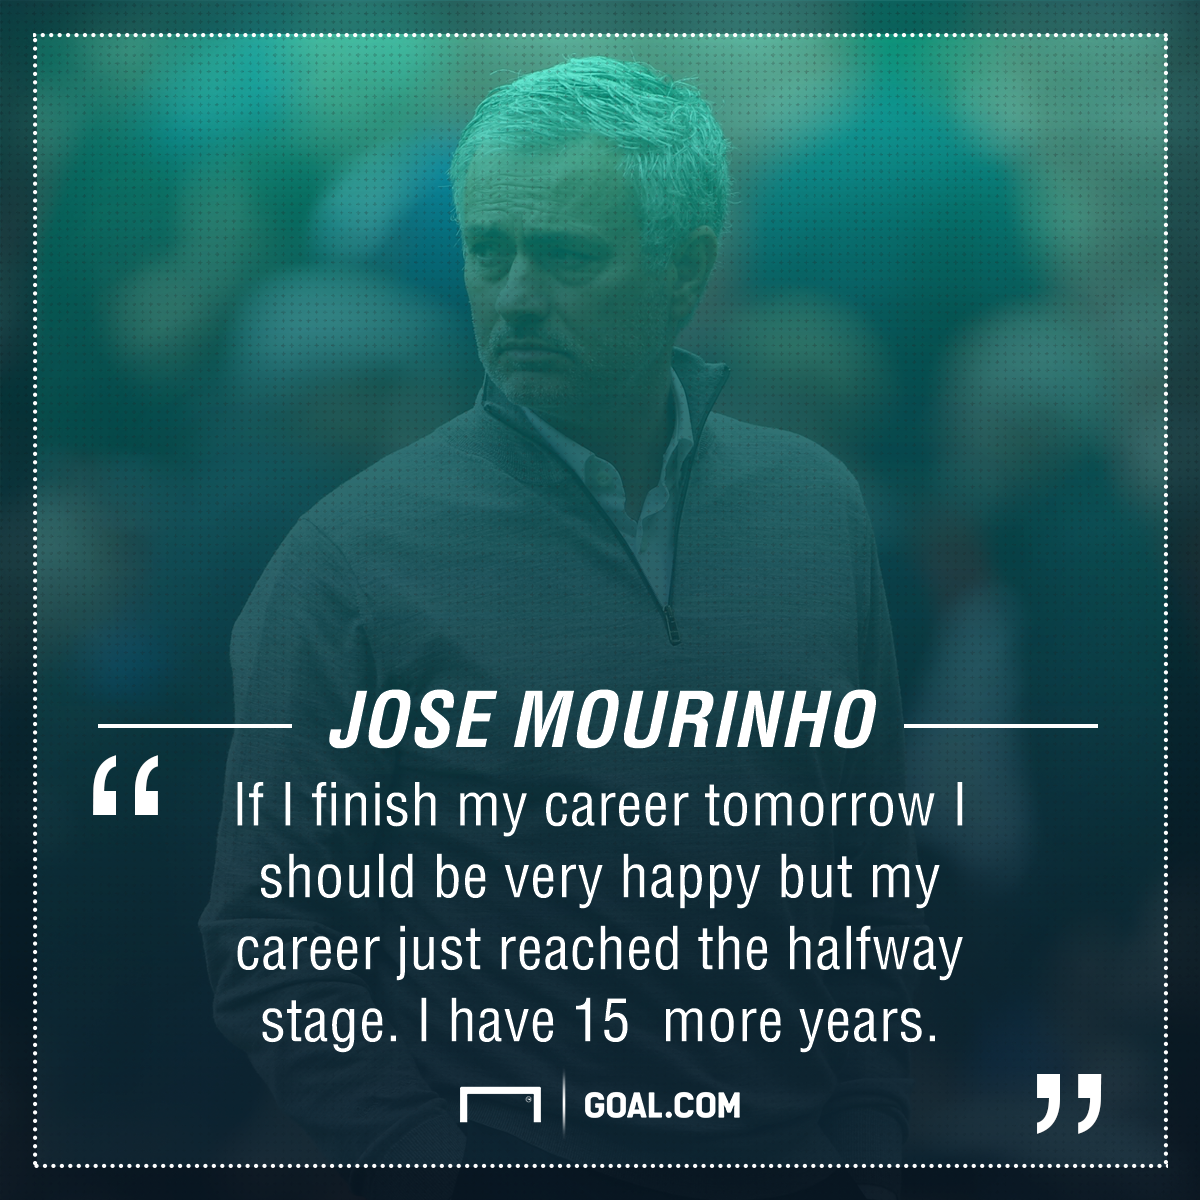 Man Utd fans review Jose Mourinho's first season in charge